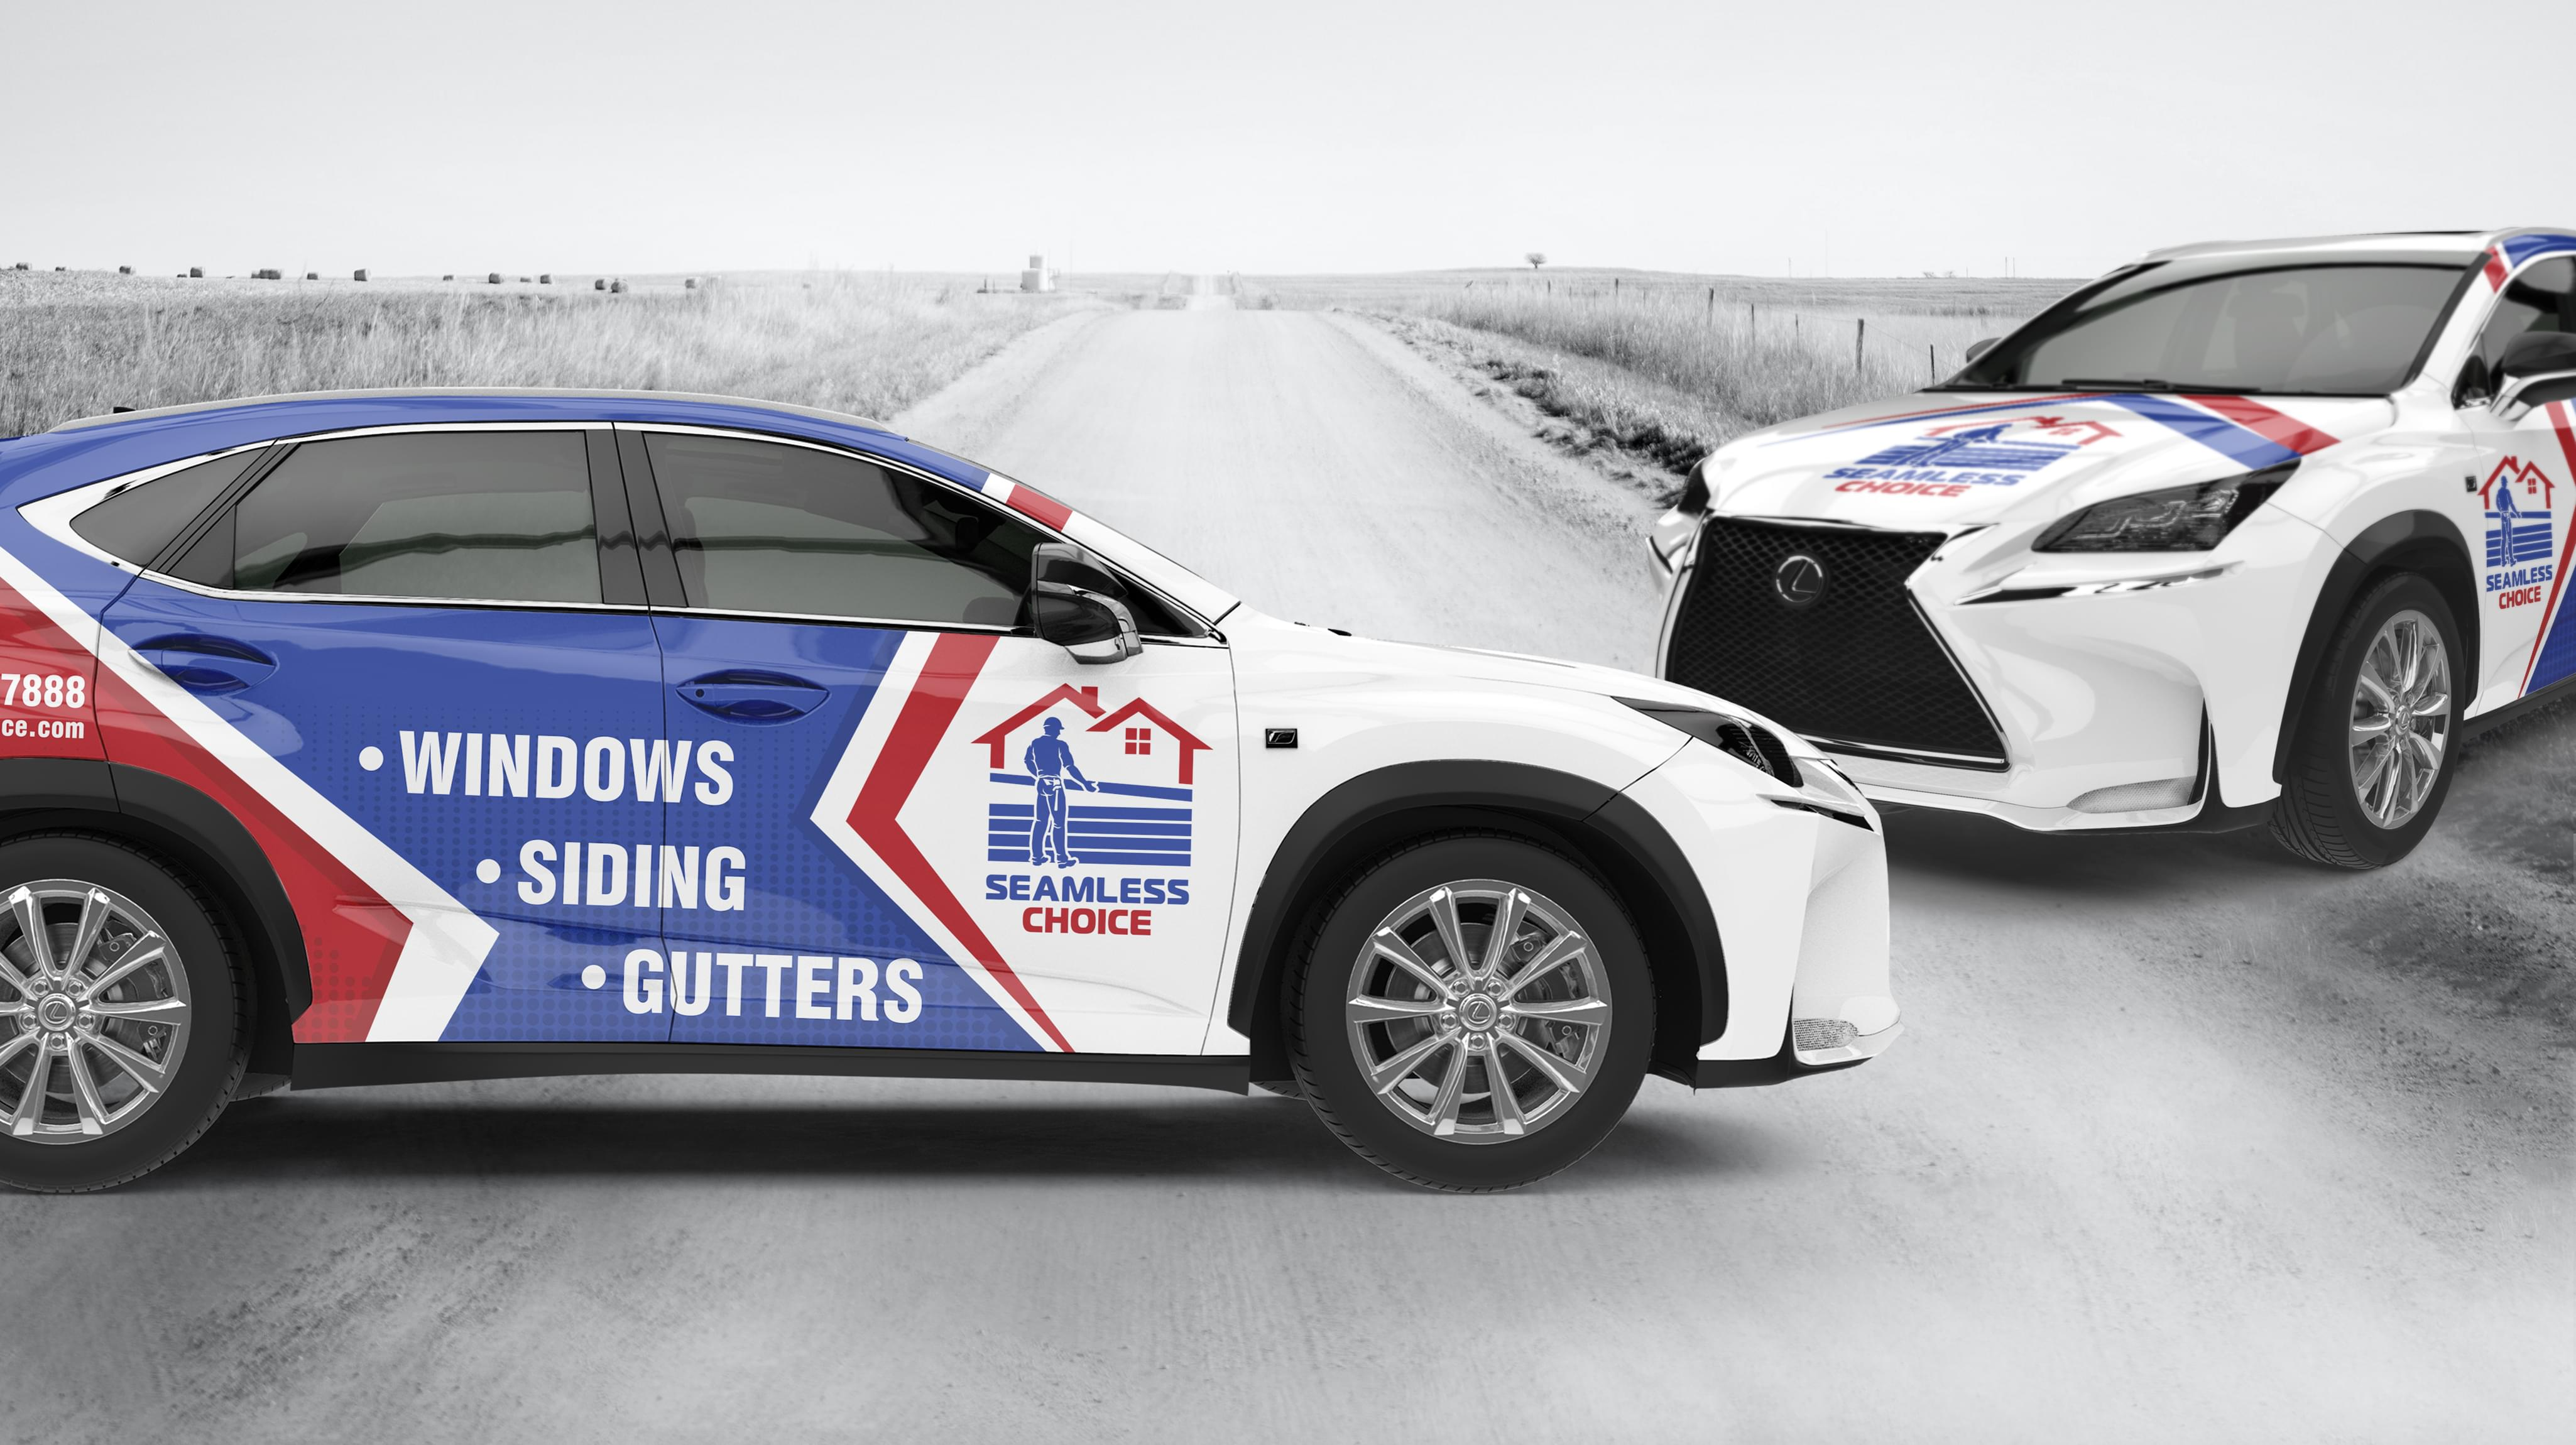 Find Out About No1 Car Wrap Design in 2021 | Branding Agency Print Graphics